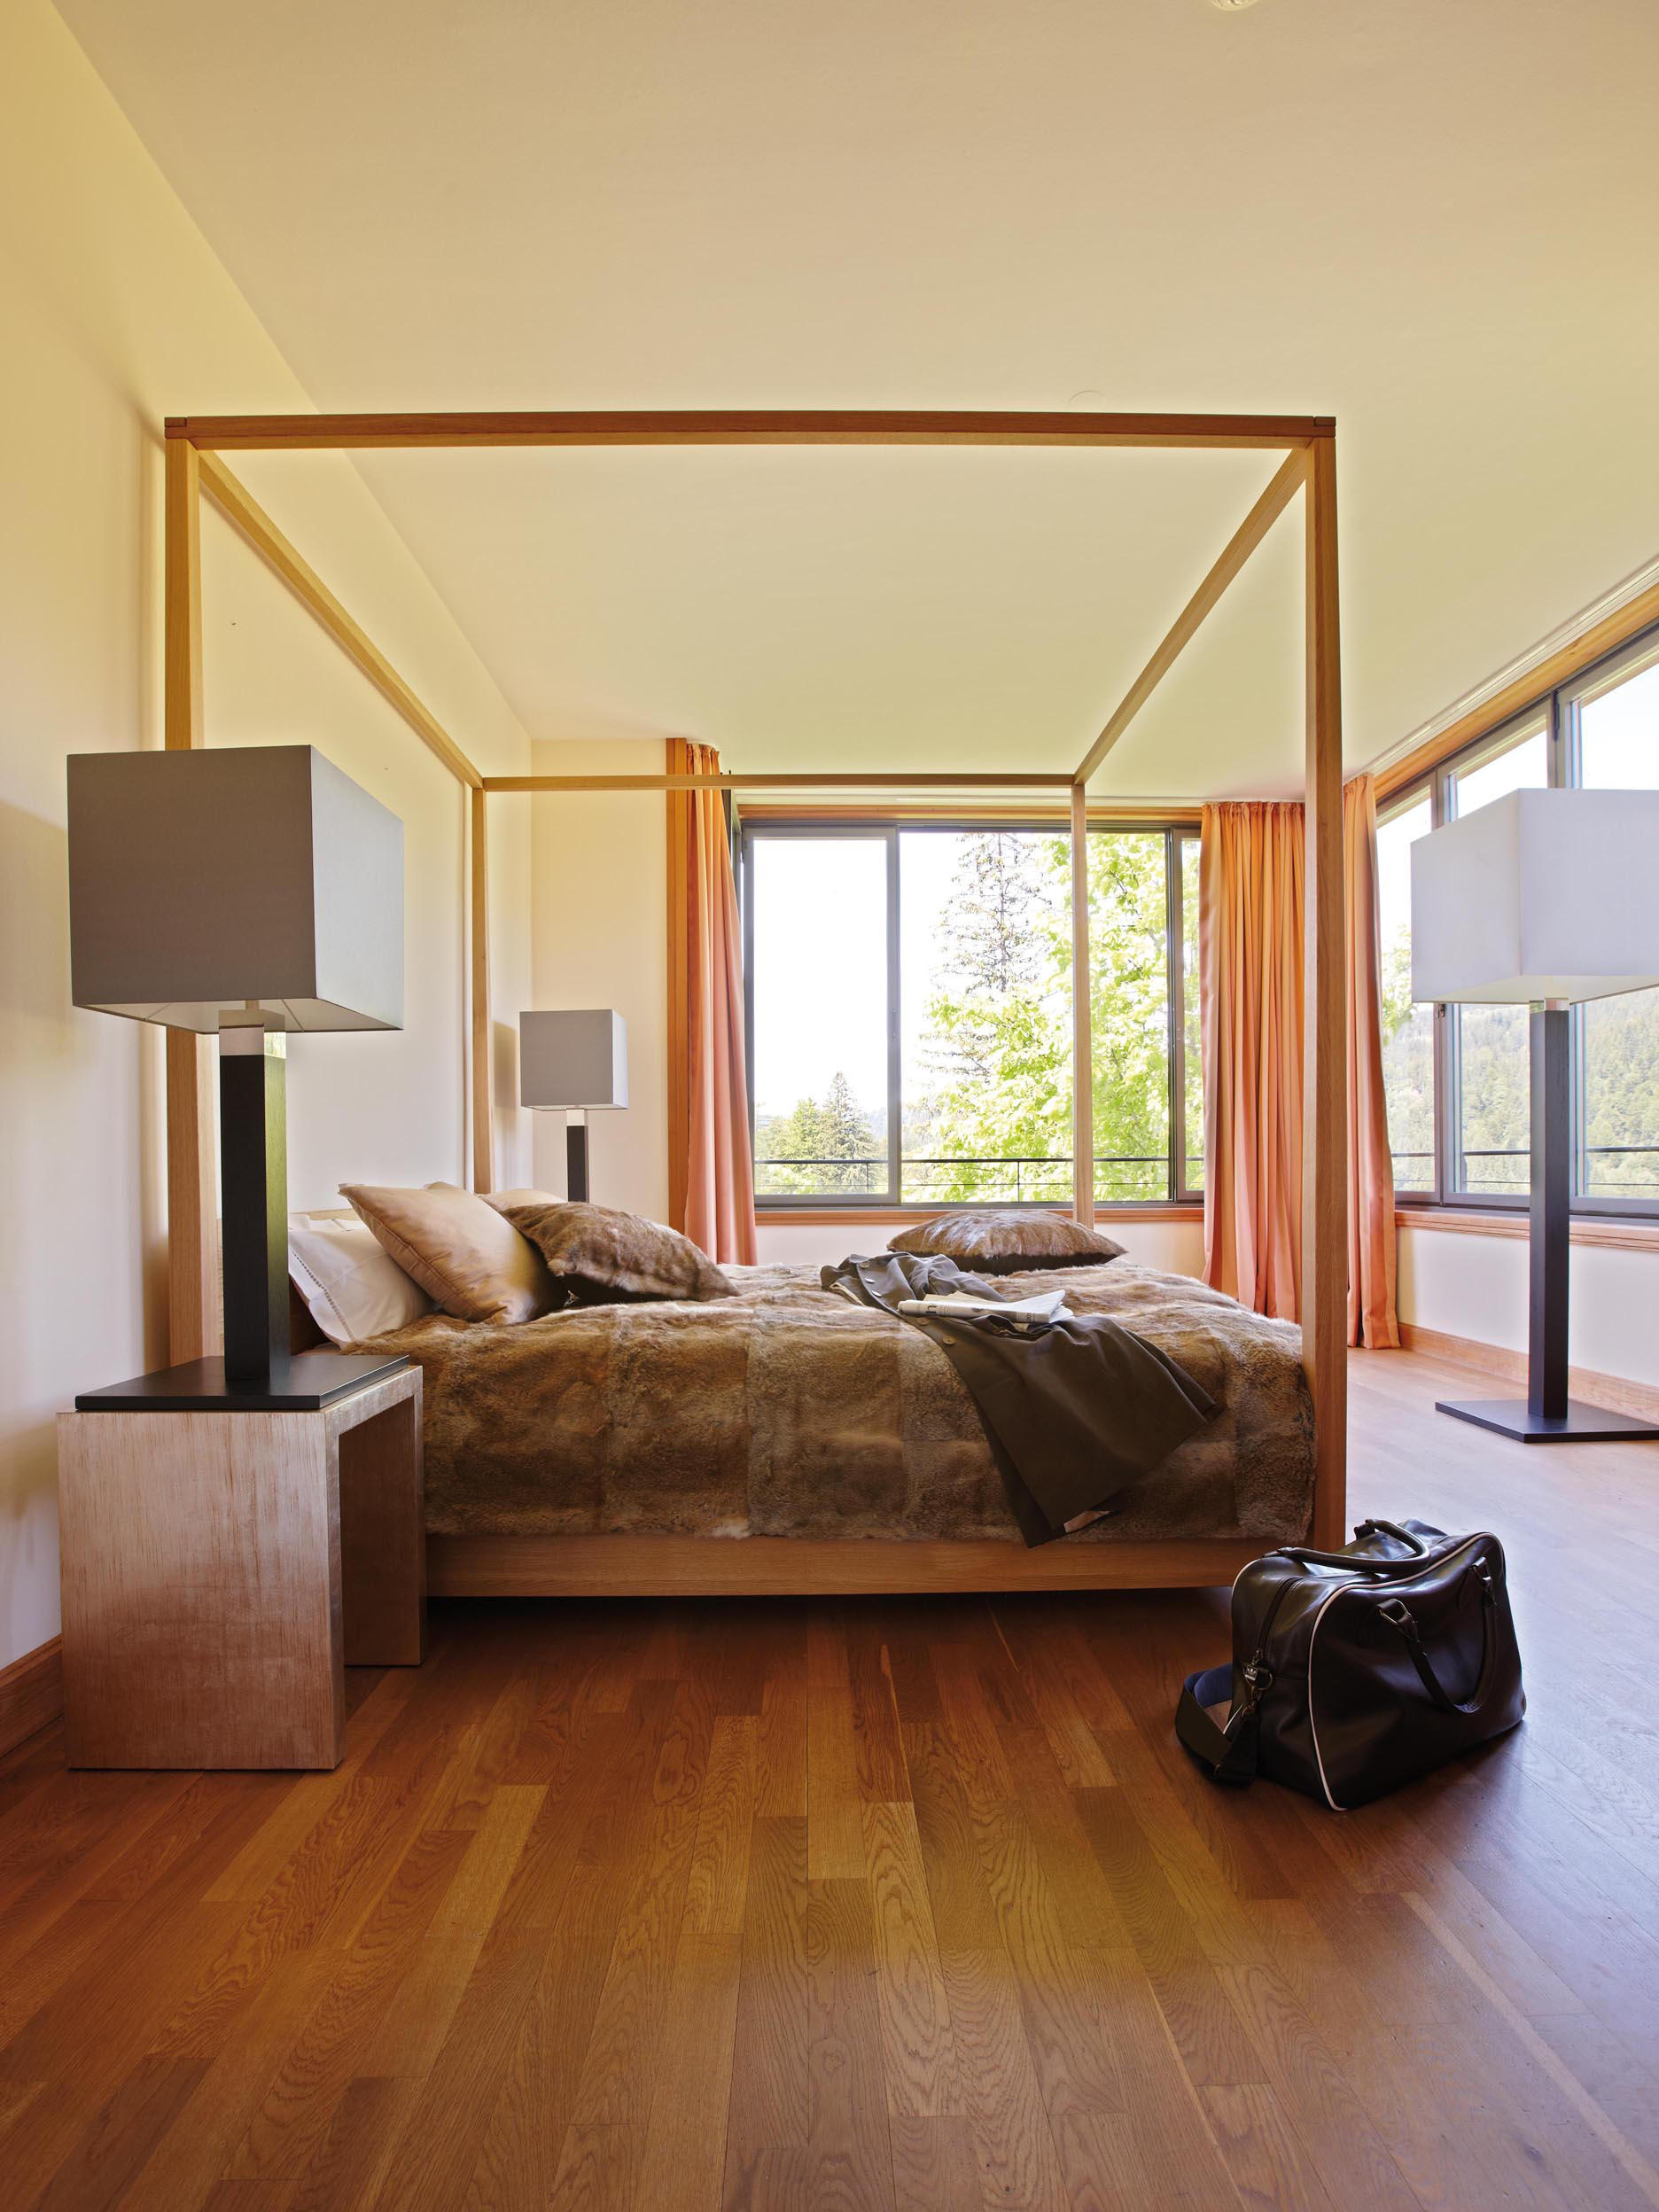 Himmelbett  ARKADIA HIMMELBETT 180 - Four poster beds from Lambert | Architonic